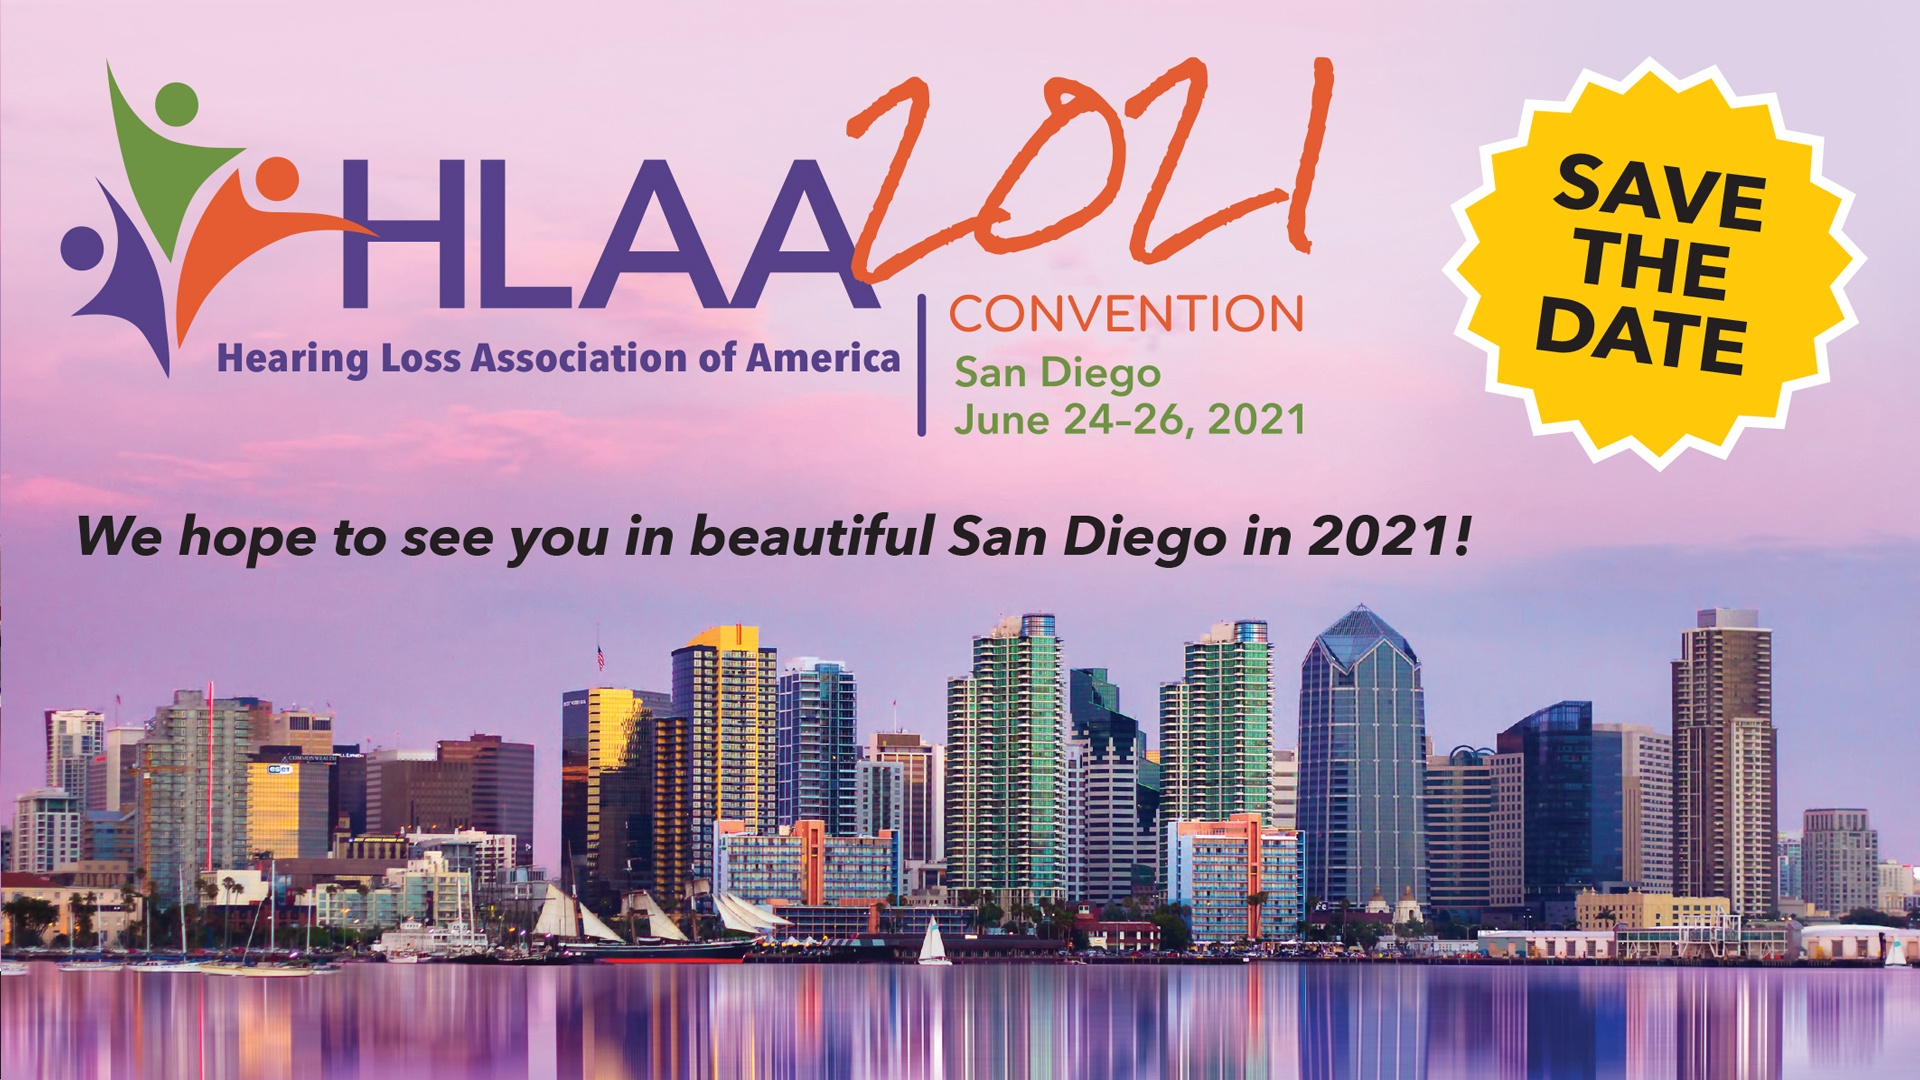 HLAA2021 Convention in San Diego - Save the Date